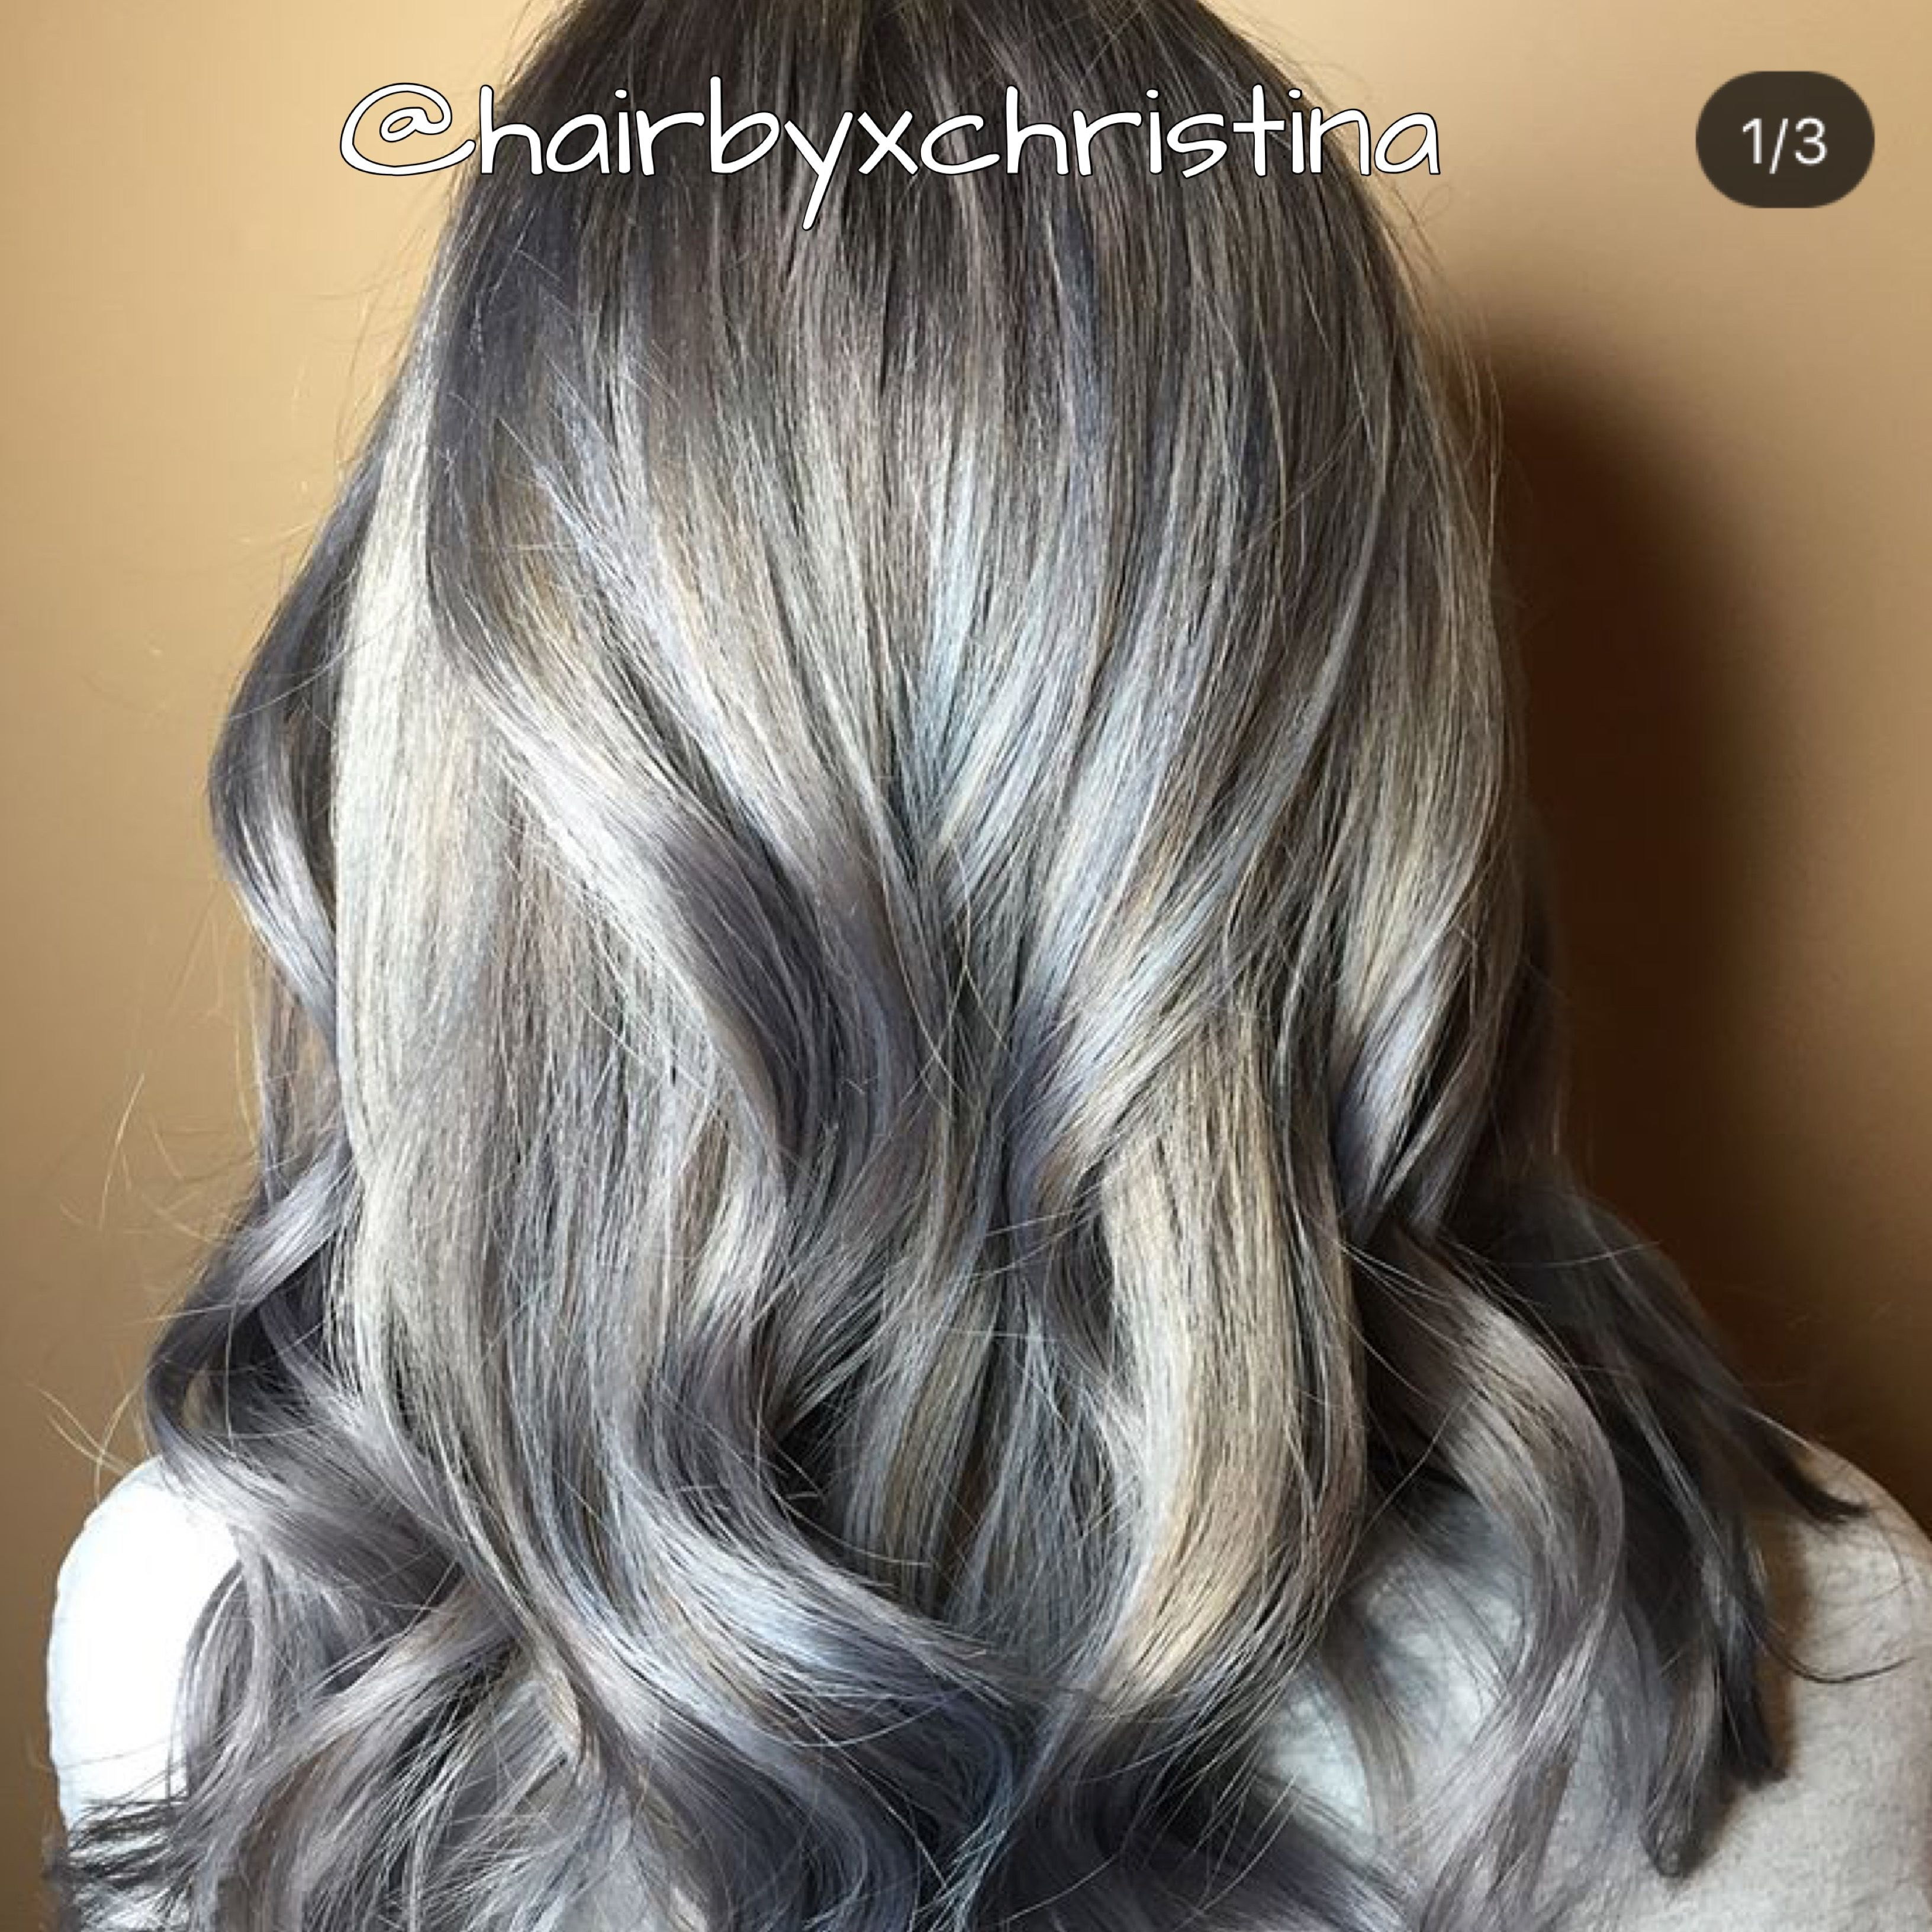 Icy blonde Metallic hair Icy gray silver hair ice blue